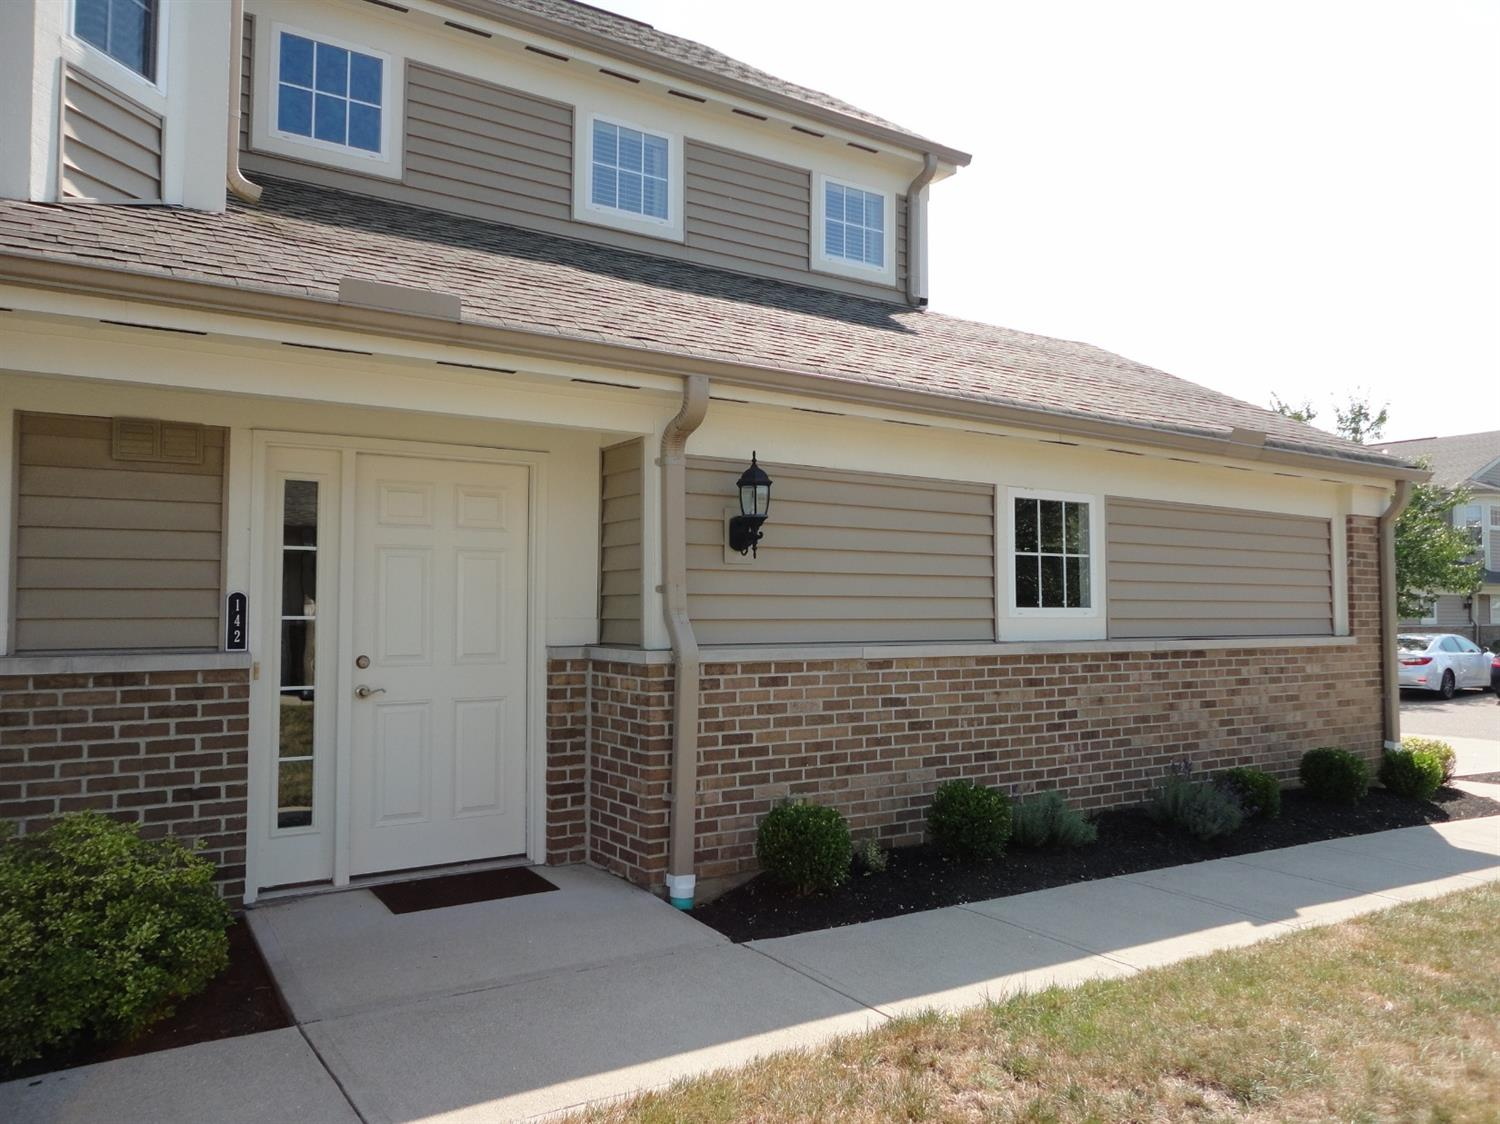 Property for sale at 142 Timepiece Lane, Harrison,  Ohio 45030